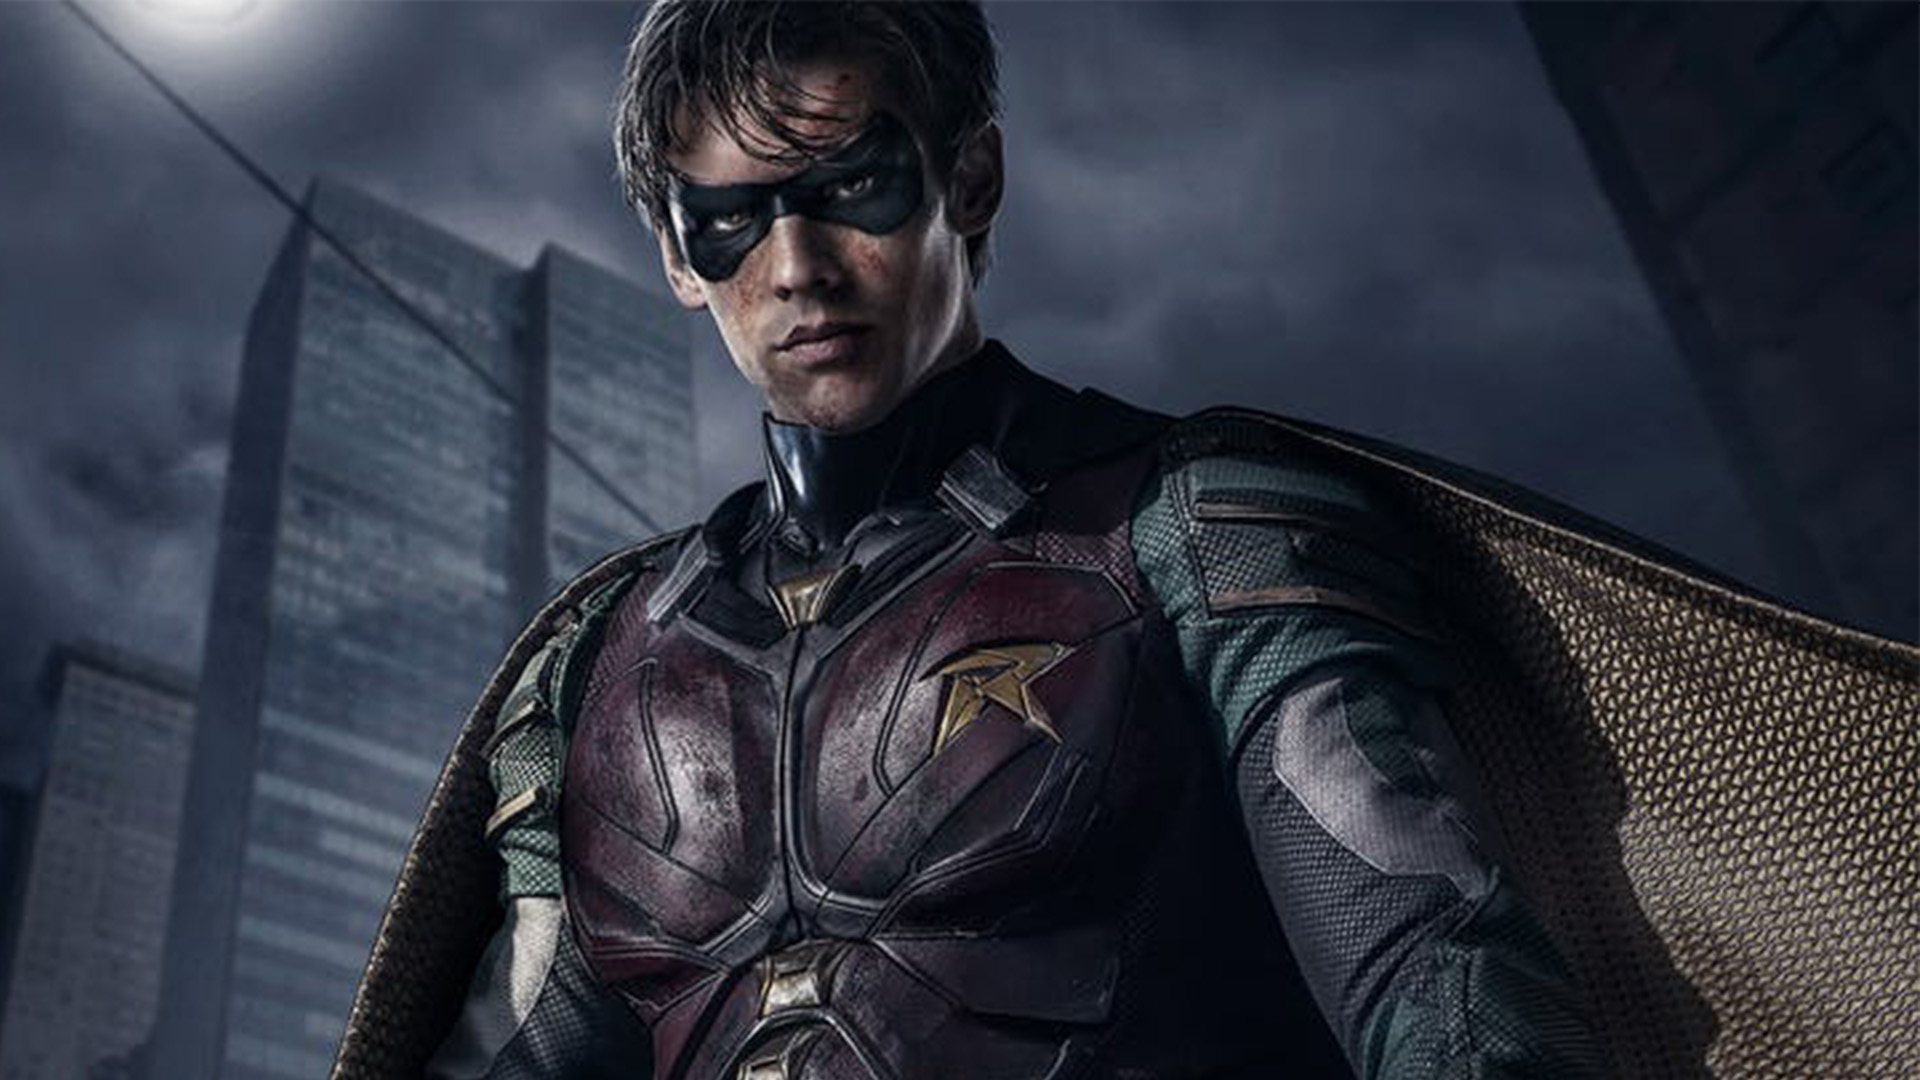 Watch The First Trailer For DC's Titans Series